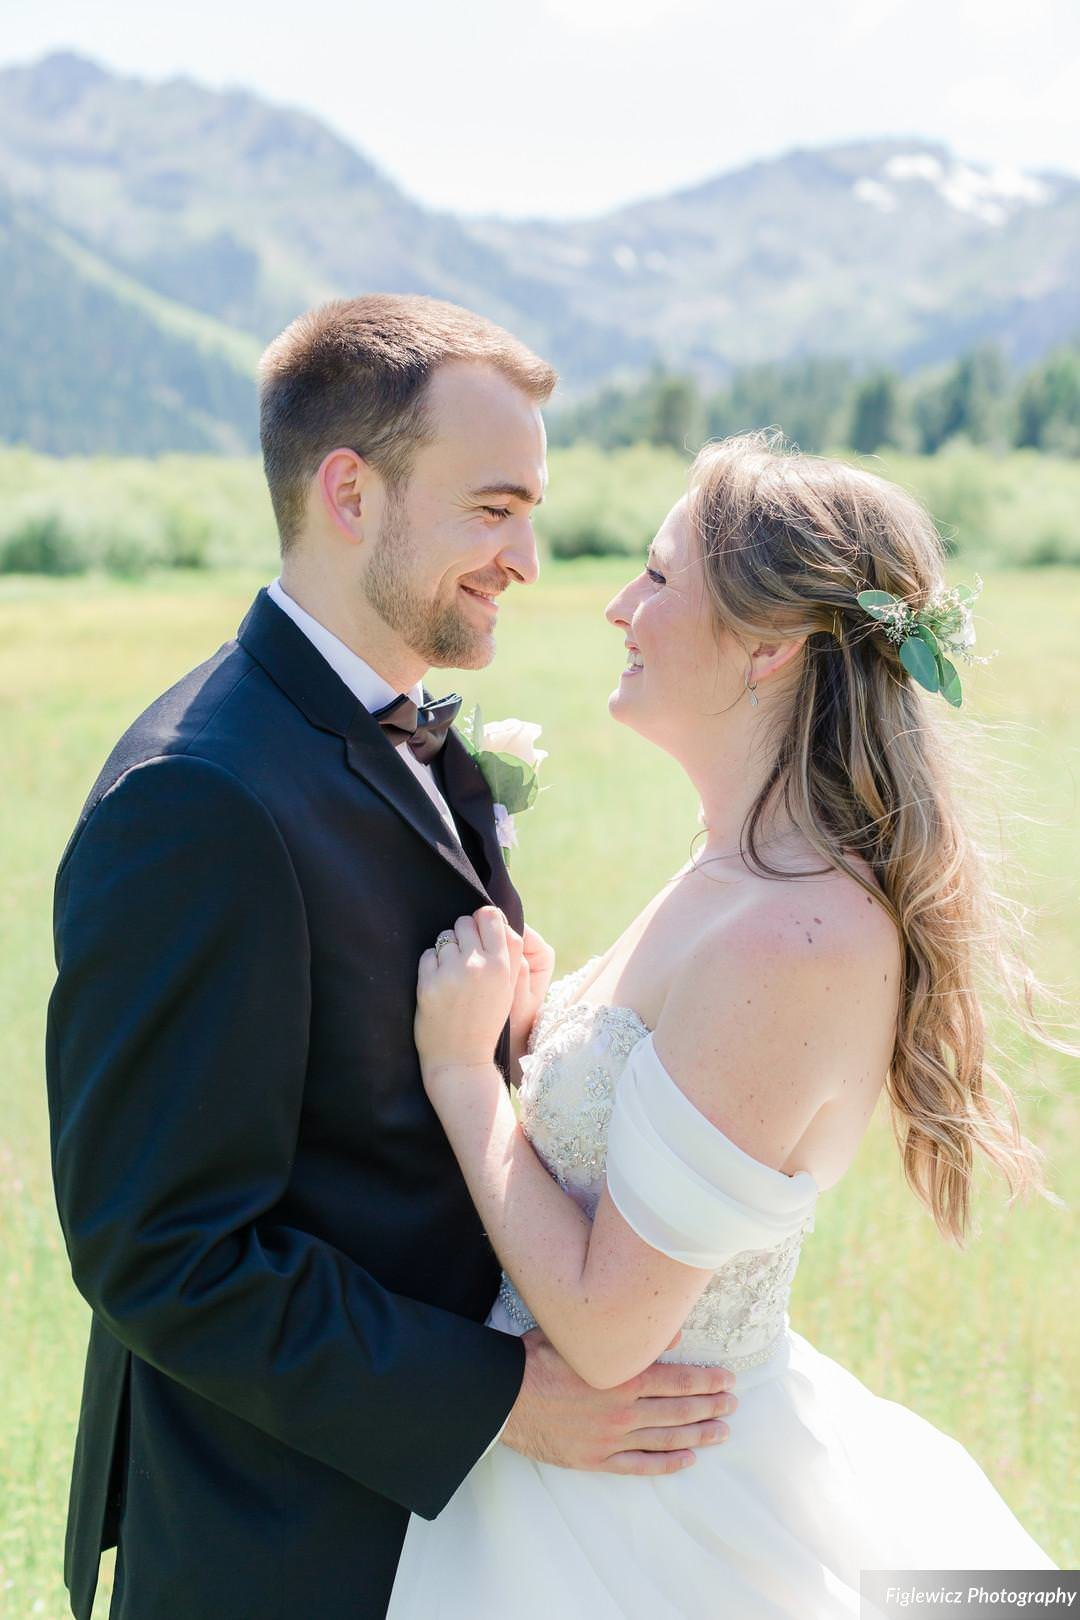 Garden_Tinsley_FiglewiczPhotography_LakeTahoeWeddingSquawValleyCreekTaylorBrendan00030_big